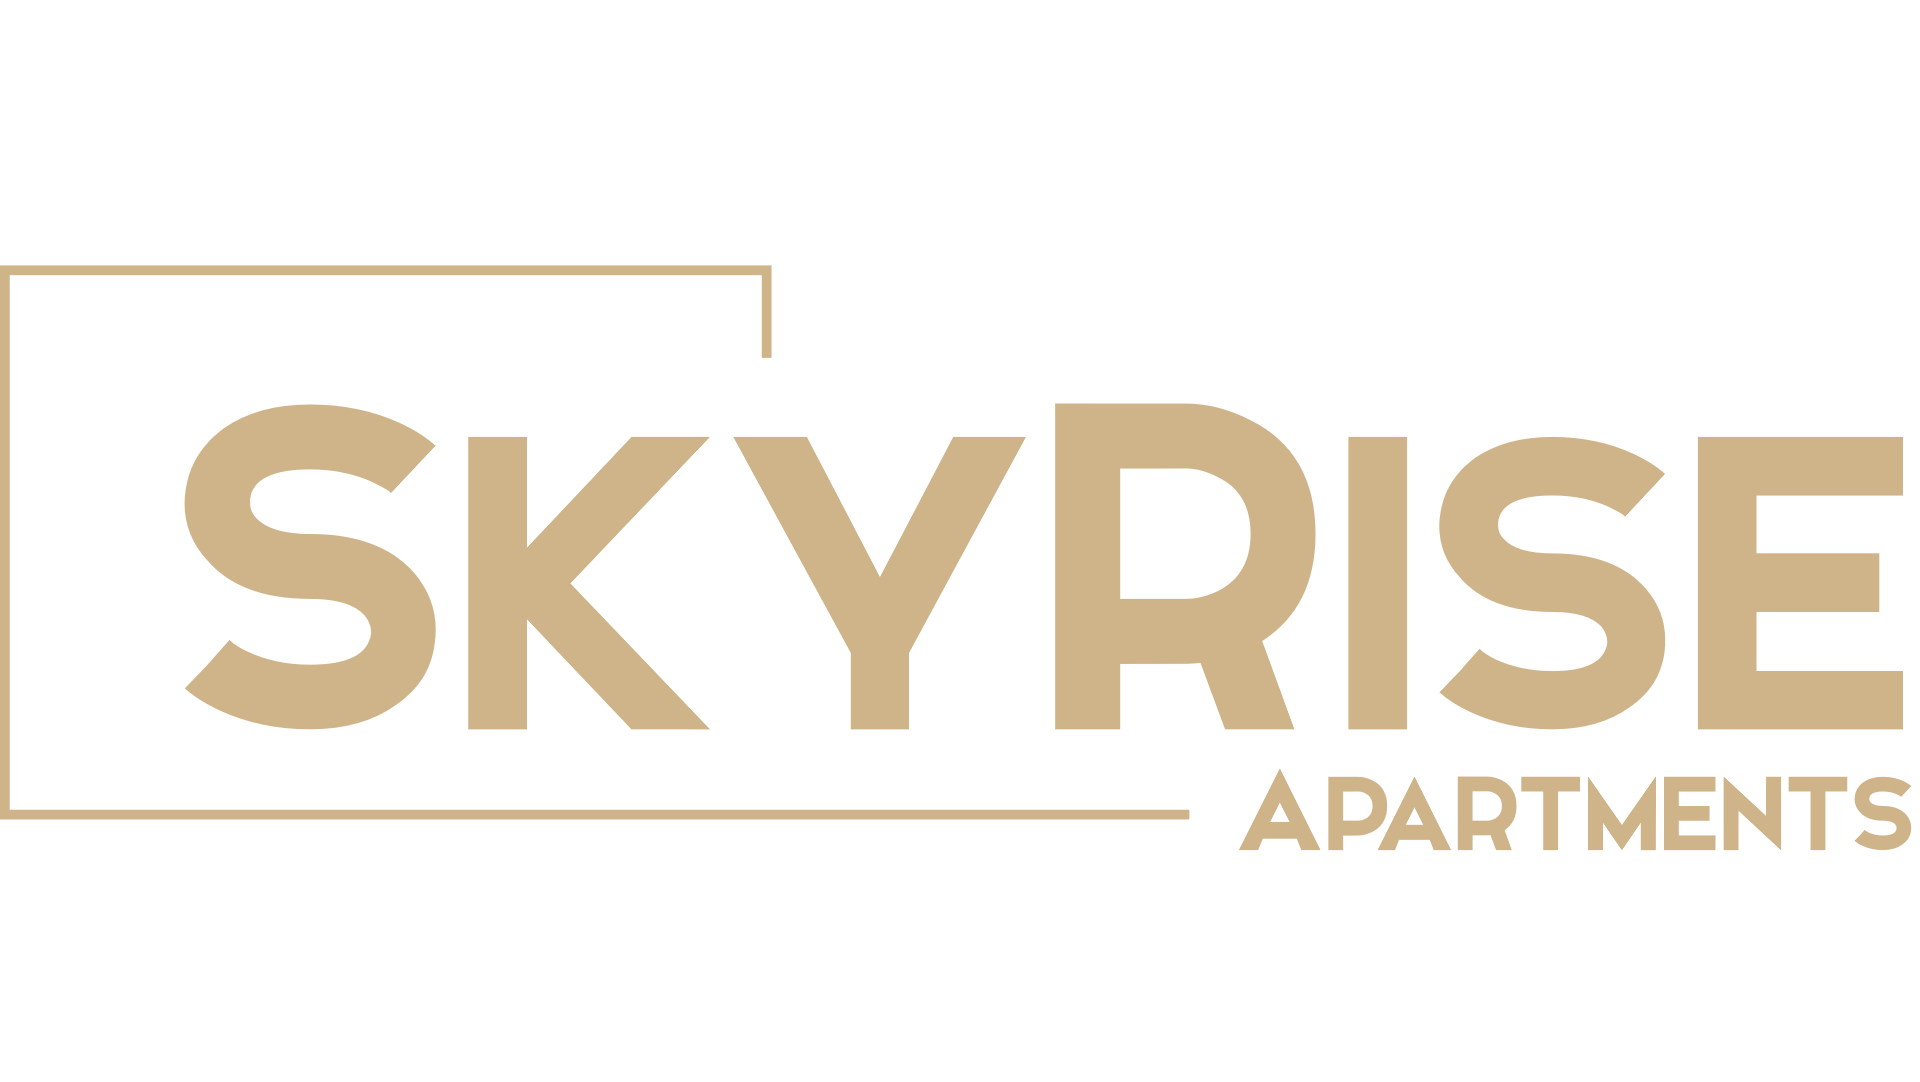 SkyRise Apartments in New Orleans, Louisiana